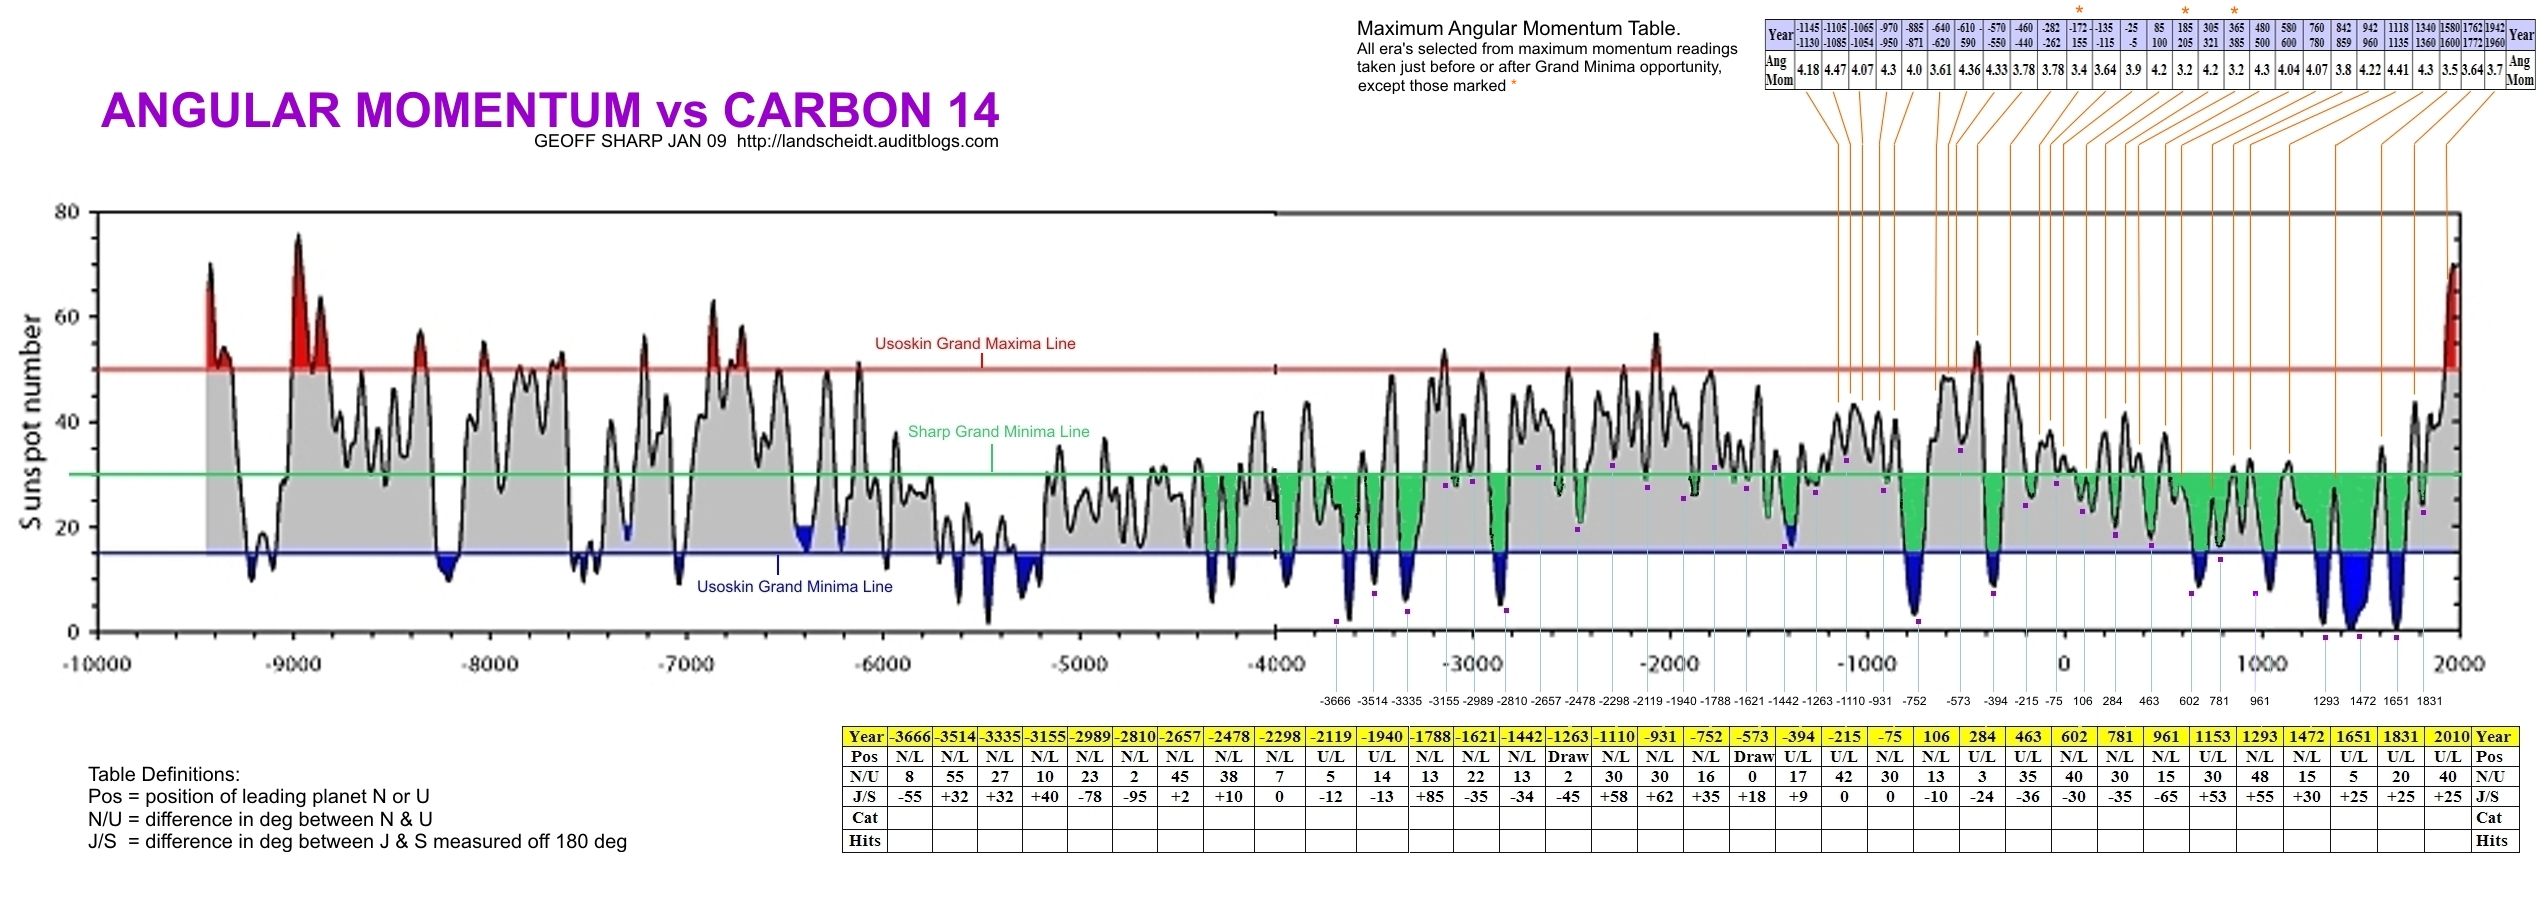 More Revisions To The Nasa Solar Cycle Prediction Watts Up With That Magnetic Motor Starter Wiring Diagram Http Wwwdocstoccom Docs Usoskin Et Al Has It Wrong By Leaving Out Grand Minima Like Dalton Sharp Have Revised Usoskins Graph Which Now Clearly Shows A 172 Yr Recurring